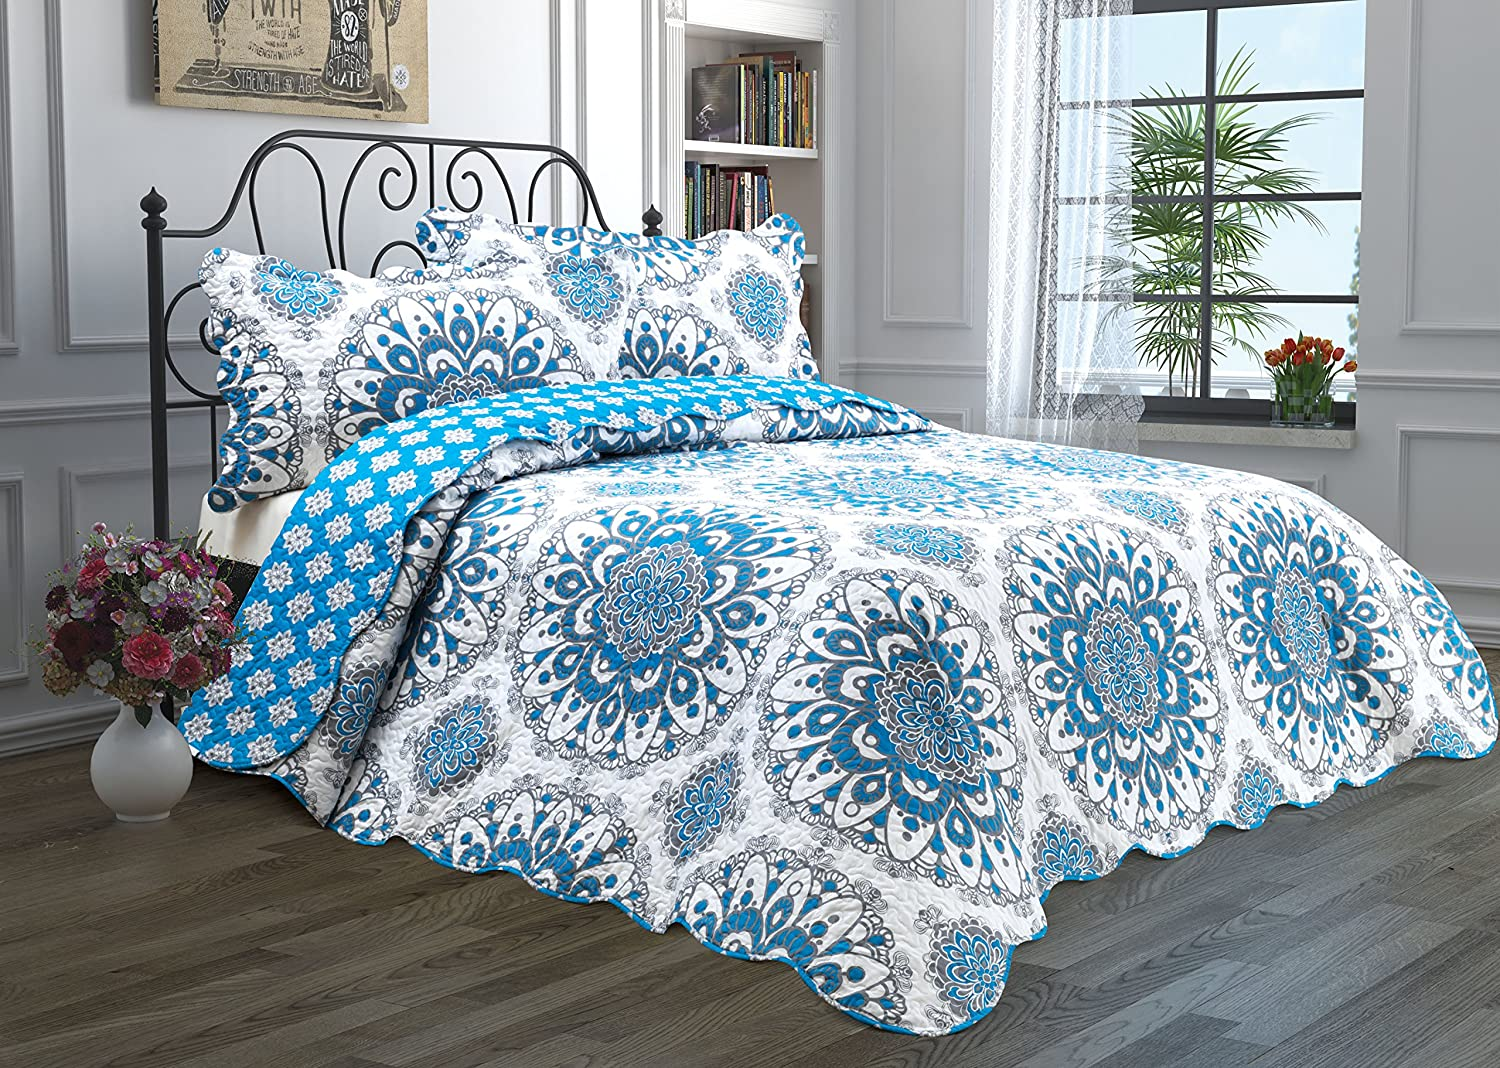 Chiara Rose 2 Piece Reversible Quilt Set Bedspread Coverlet Lightweight Comforter Twin MDLLN